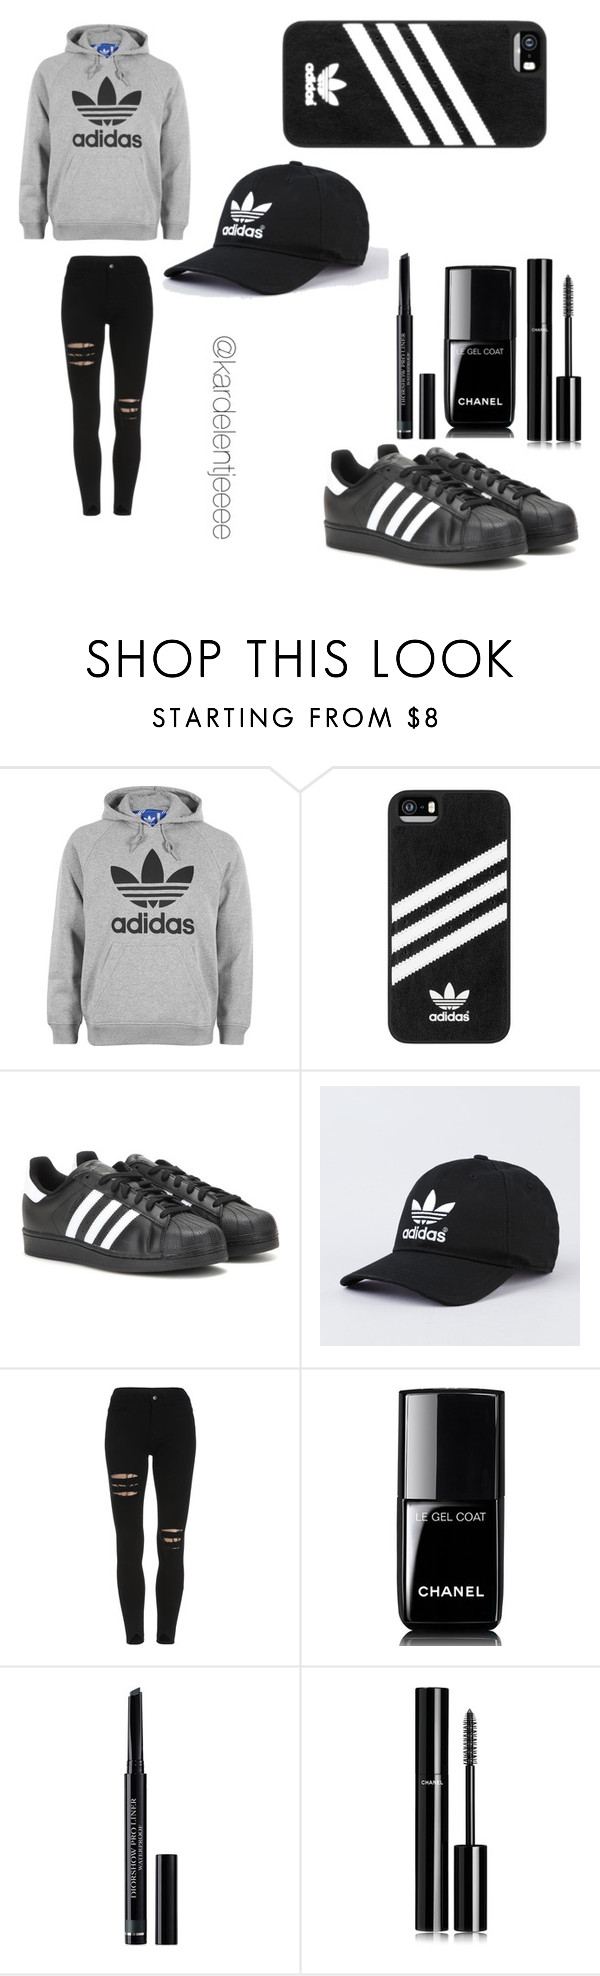 """#52"" by kardelentjeeee ❤ liked on Polyvore featuring adidas, Chanel and Christian Dior"